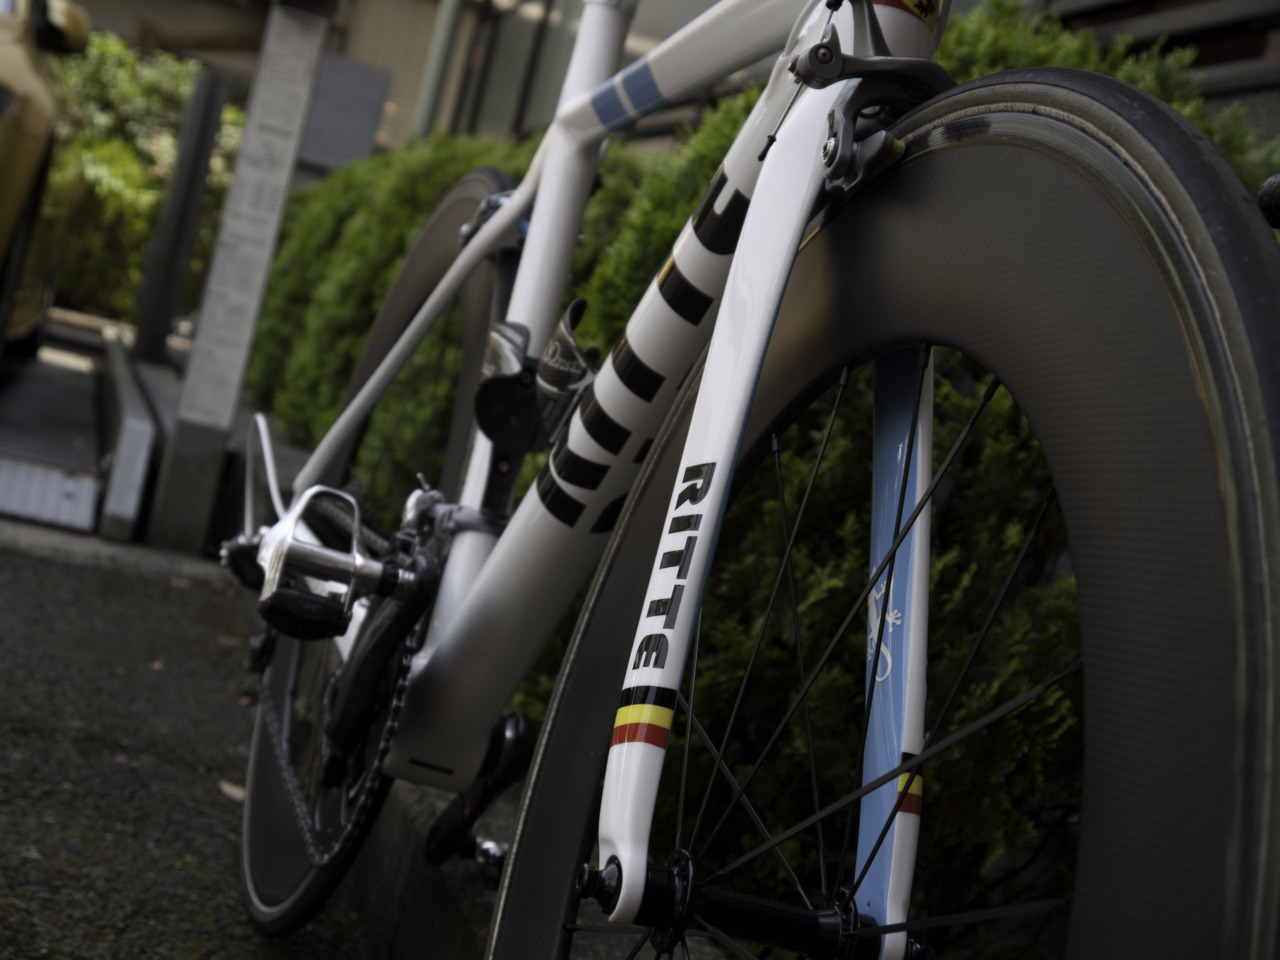 deepsection:  shotens6:  88mm  #ritte